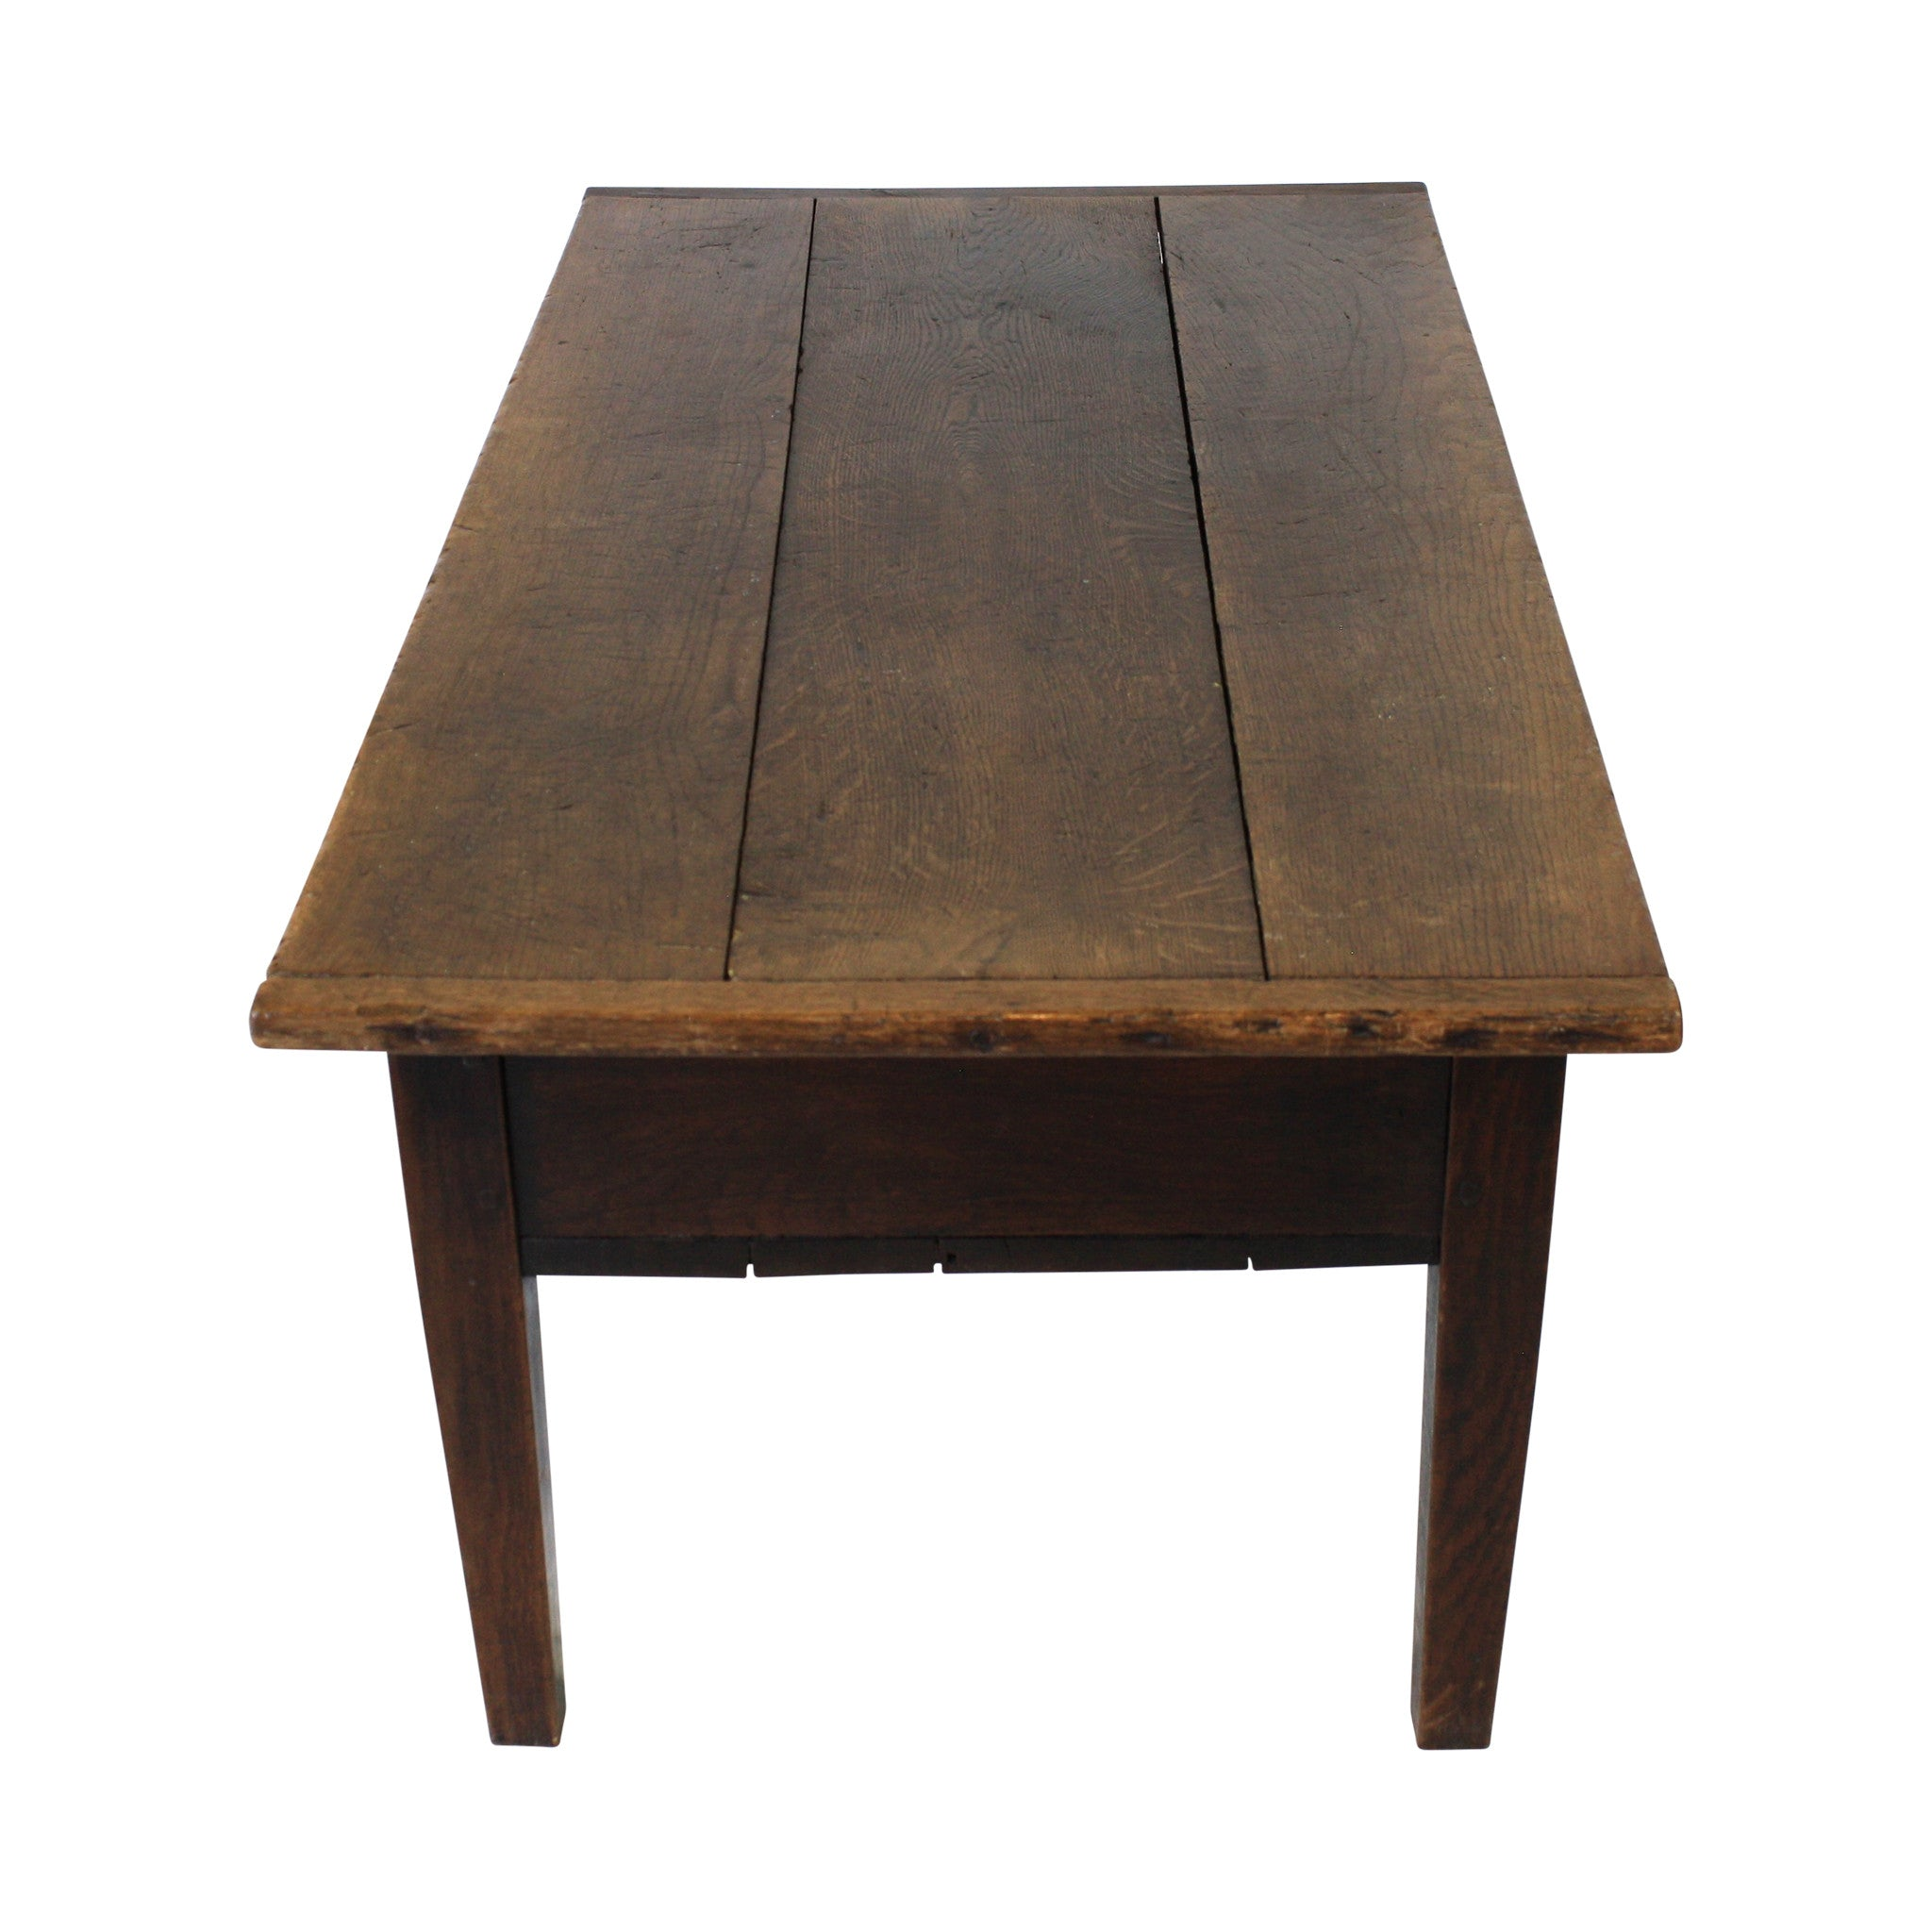 ski-country-antiques - Oak Coffee Table with Storage